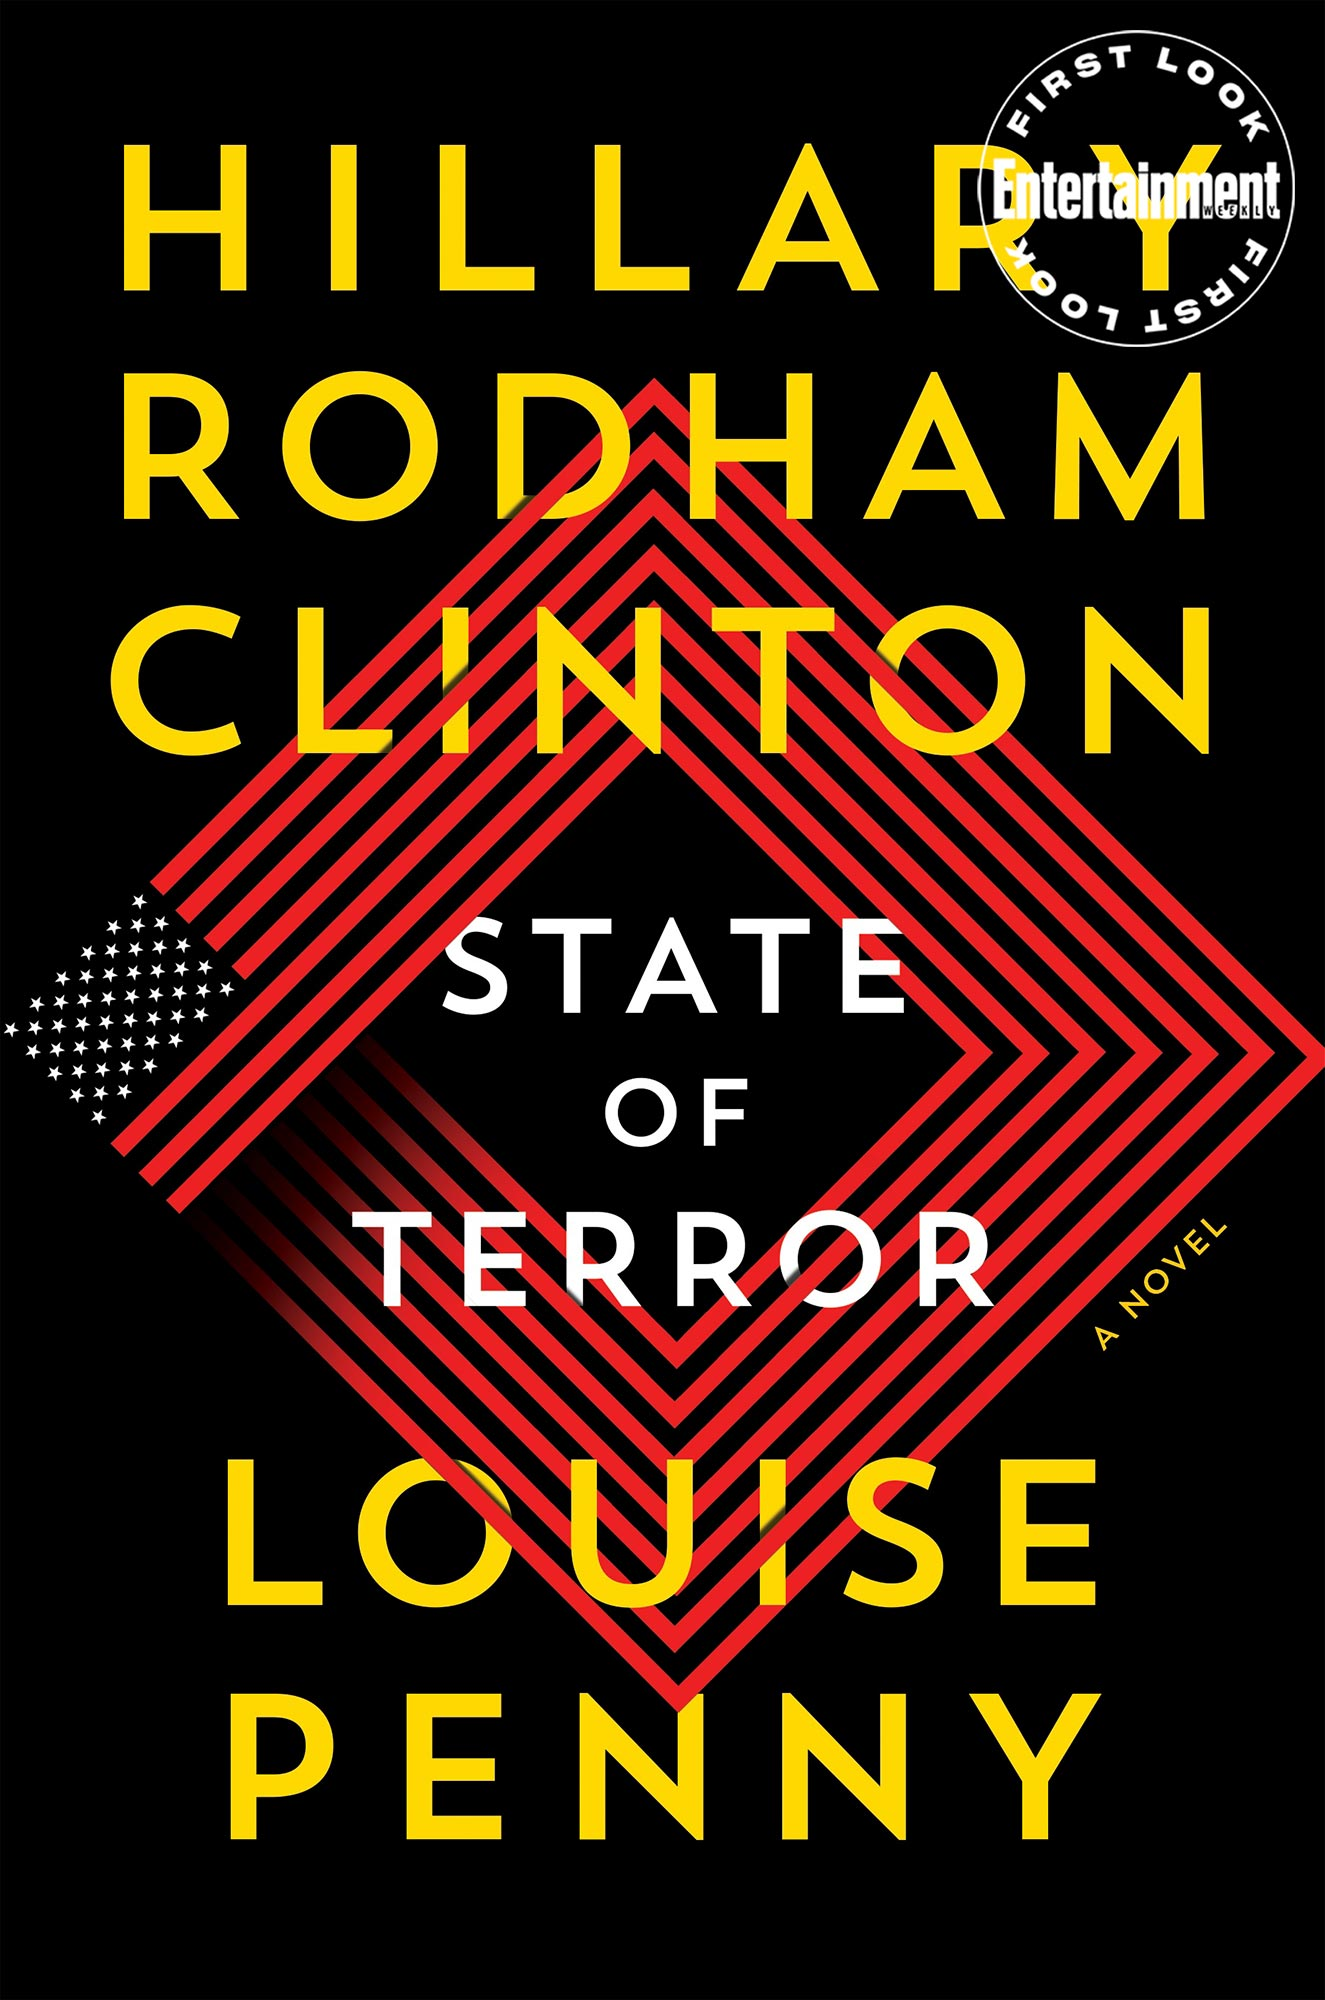 Hillary Rodham Clinton State of Terror